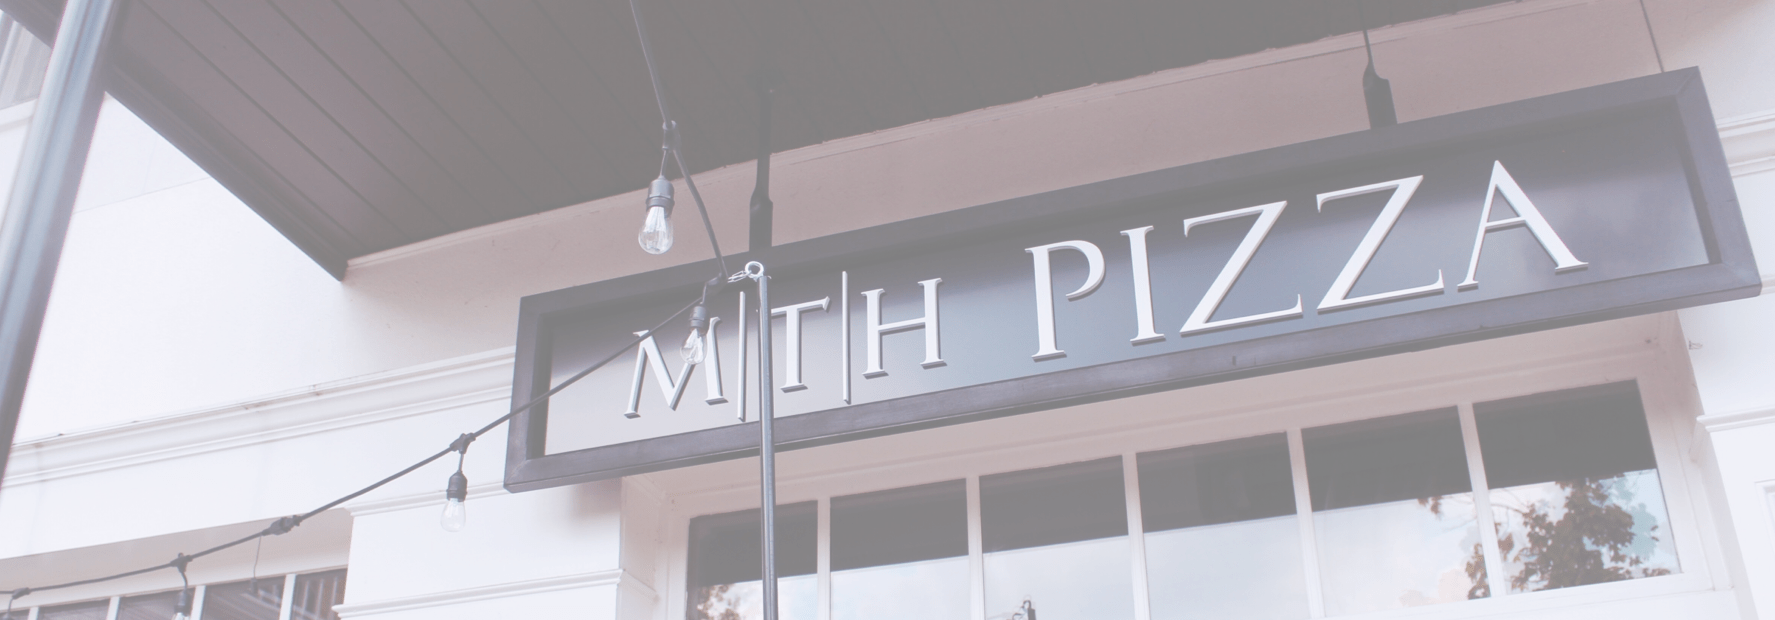 The sign and hanging lights above the dining entrance to MTH Pizza in Smyrna